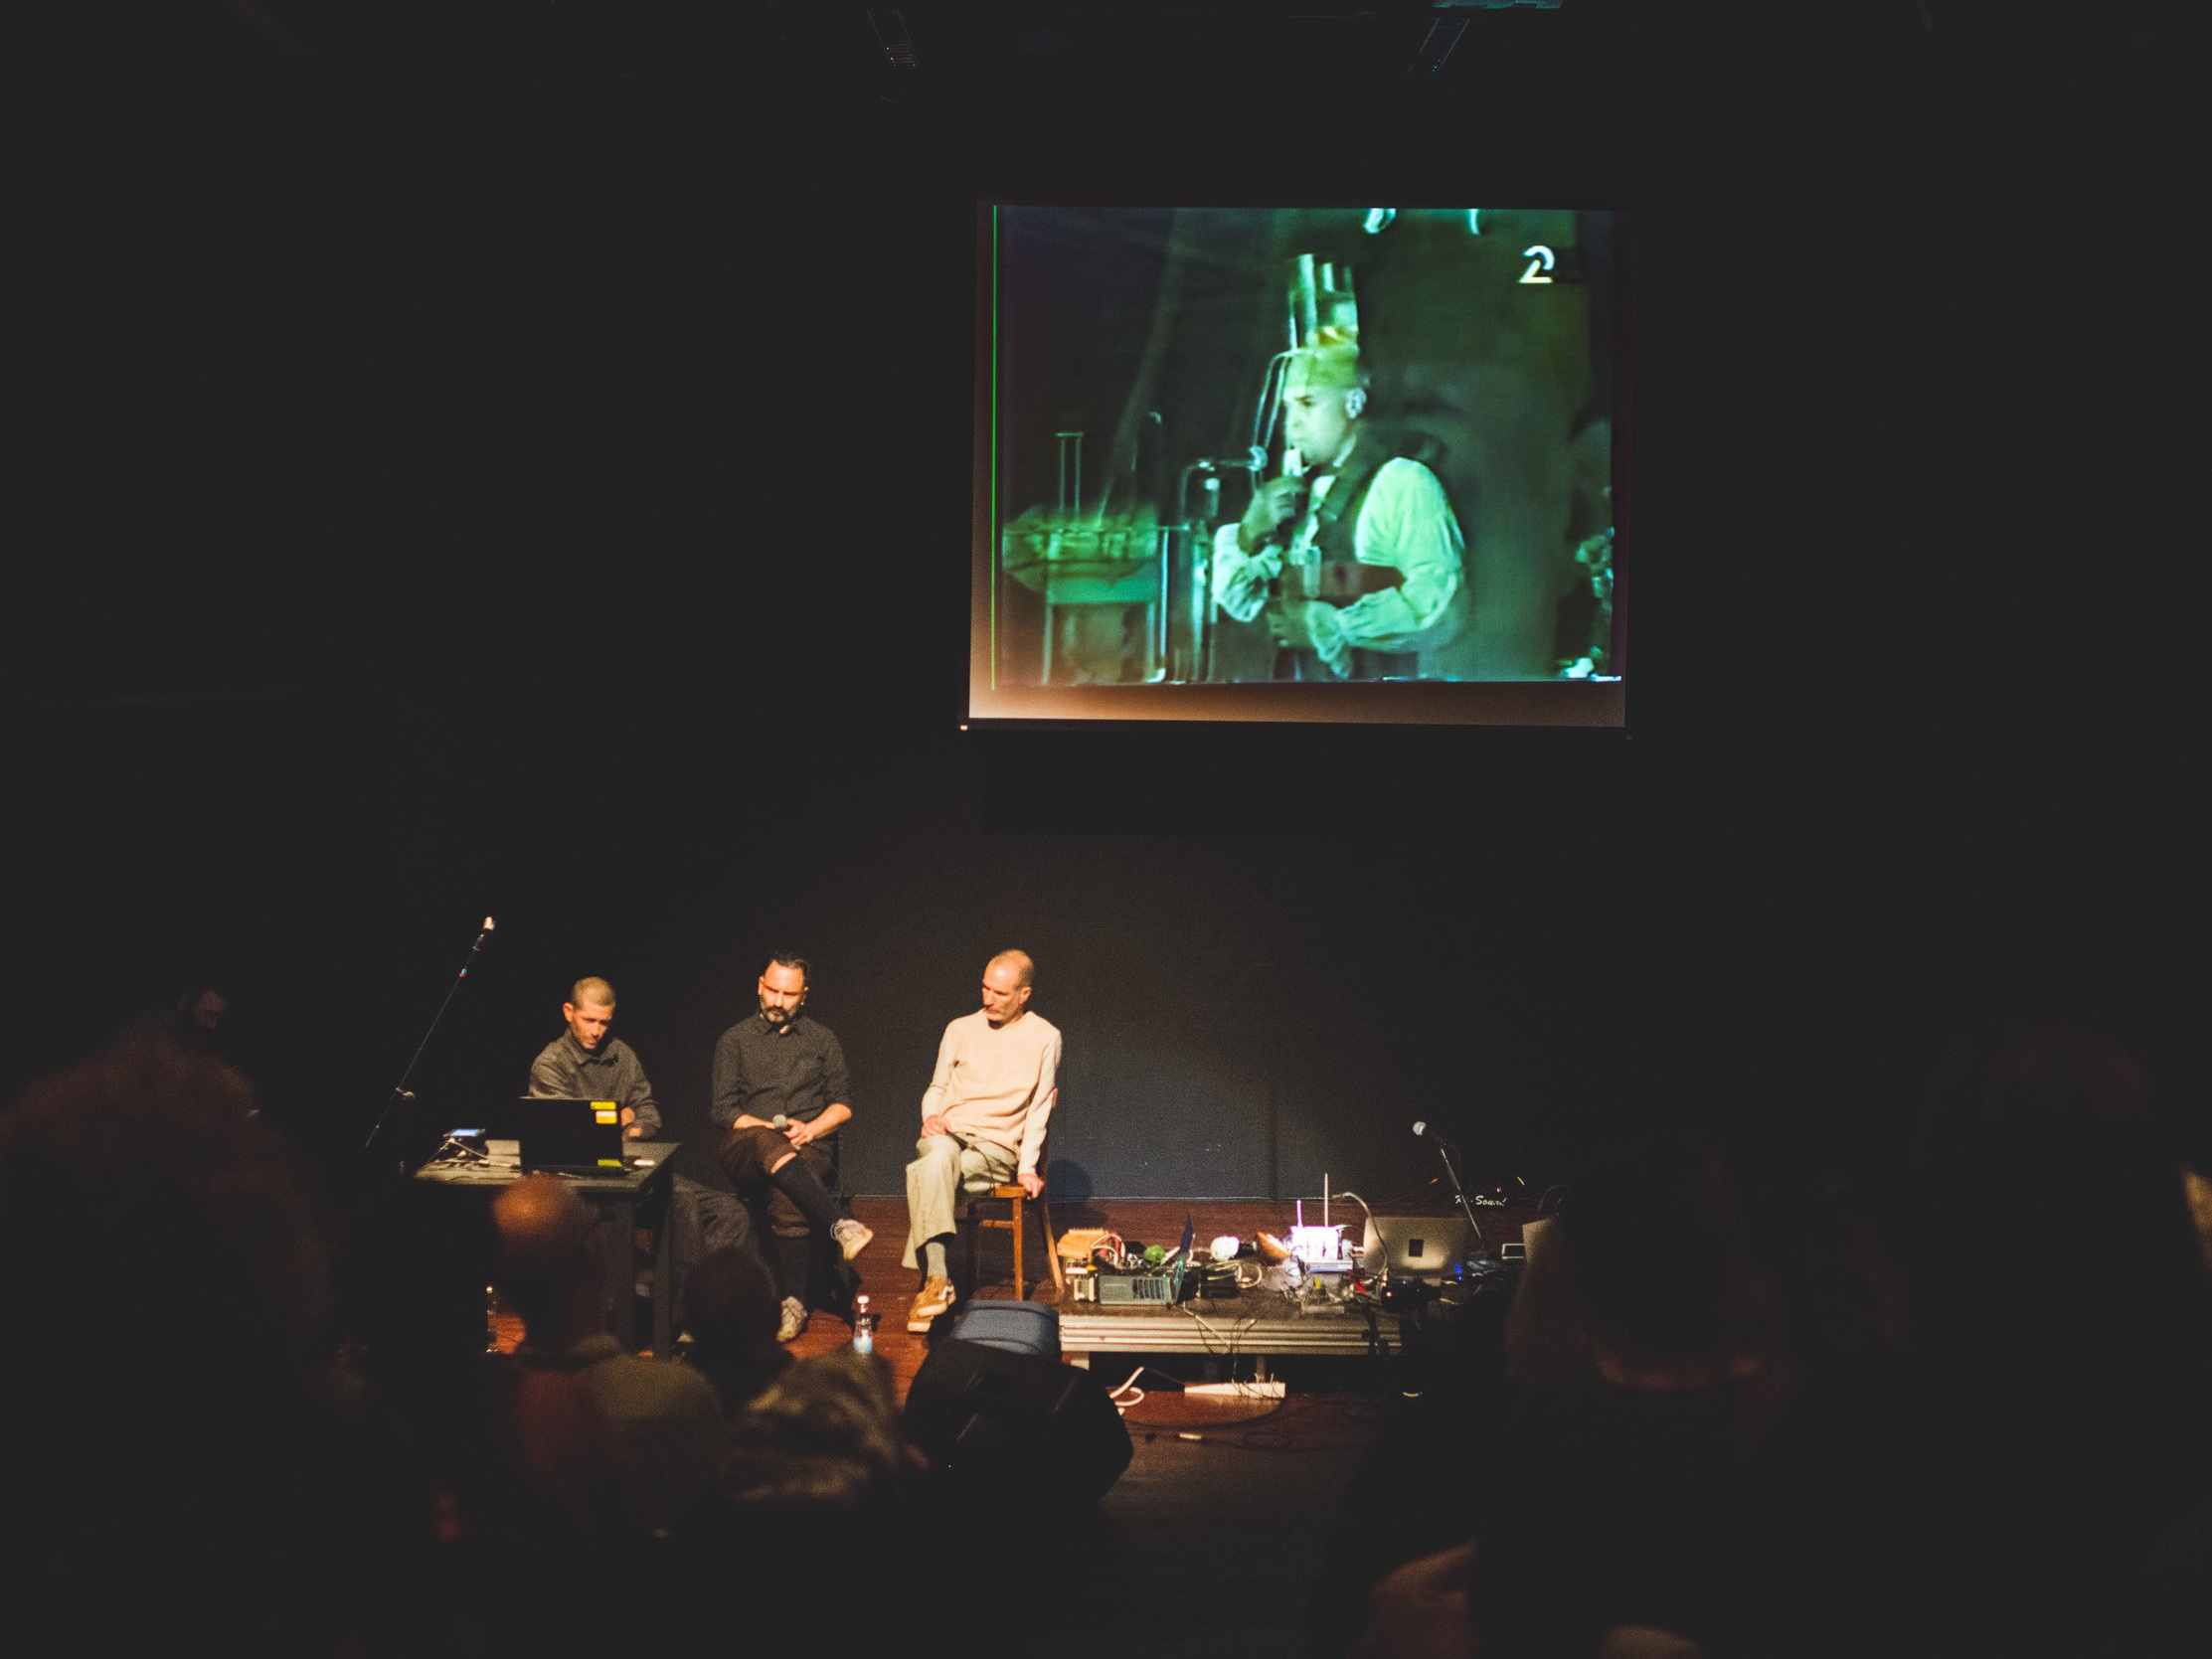 """Ohad Fishof, Yishai Adar, and Benia Reches and on the screen the performance video of """"Panta Rai"""" in the background. Uri Katzenstein performed in the ensemble """"Panta Rai"""" with Yossi Lederman of blessed memory, at the Roxanne Club in Tel Aviv in 1991."""